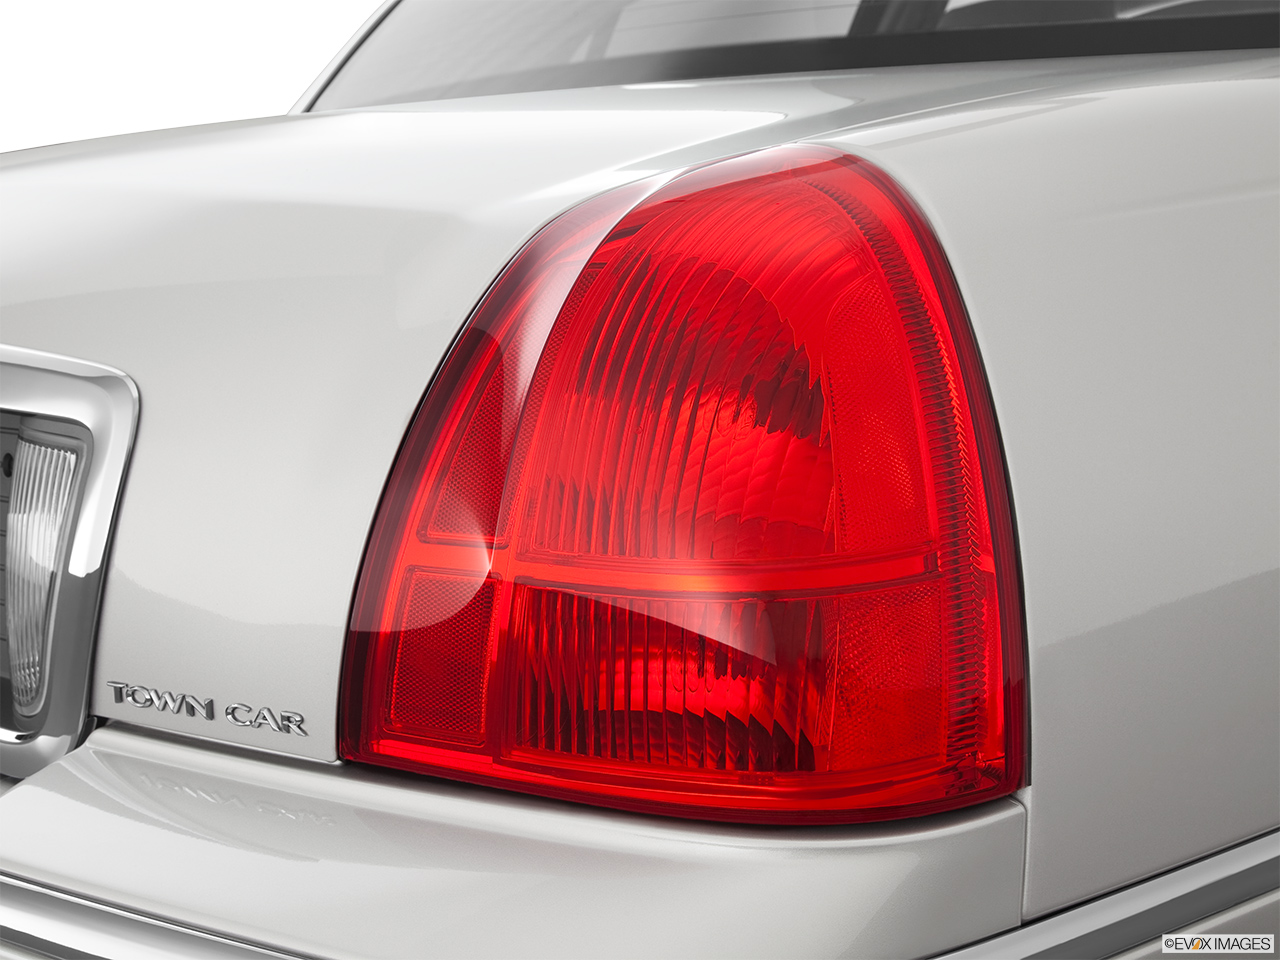 2011 Lincoln Town Car Signature Limited Passenger Side Taillight.